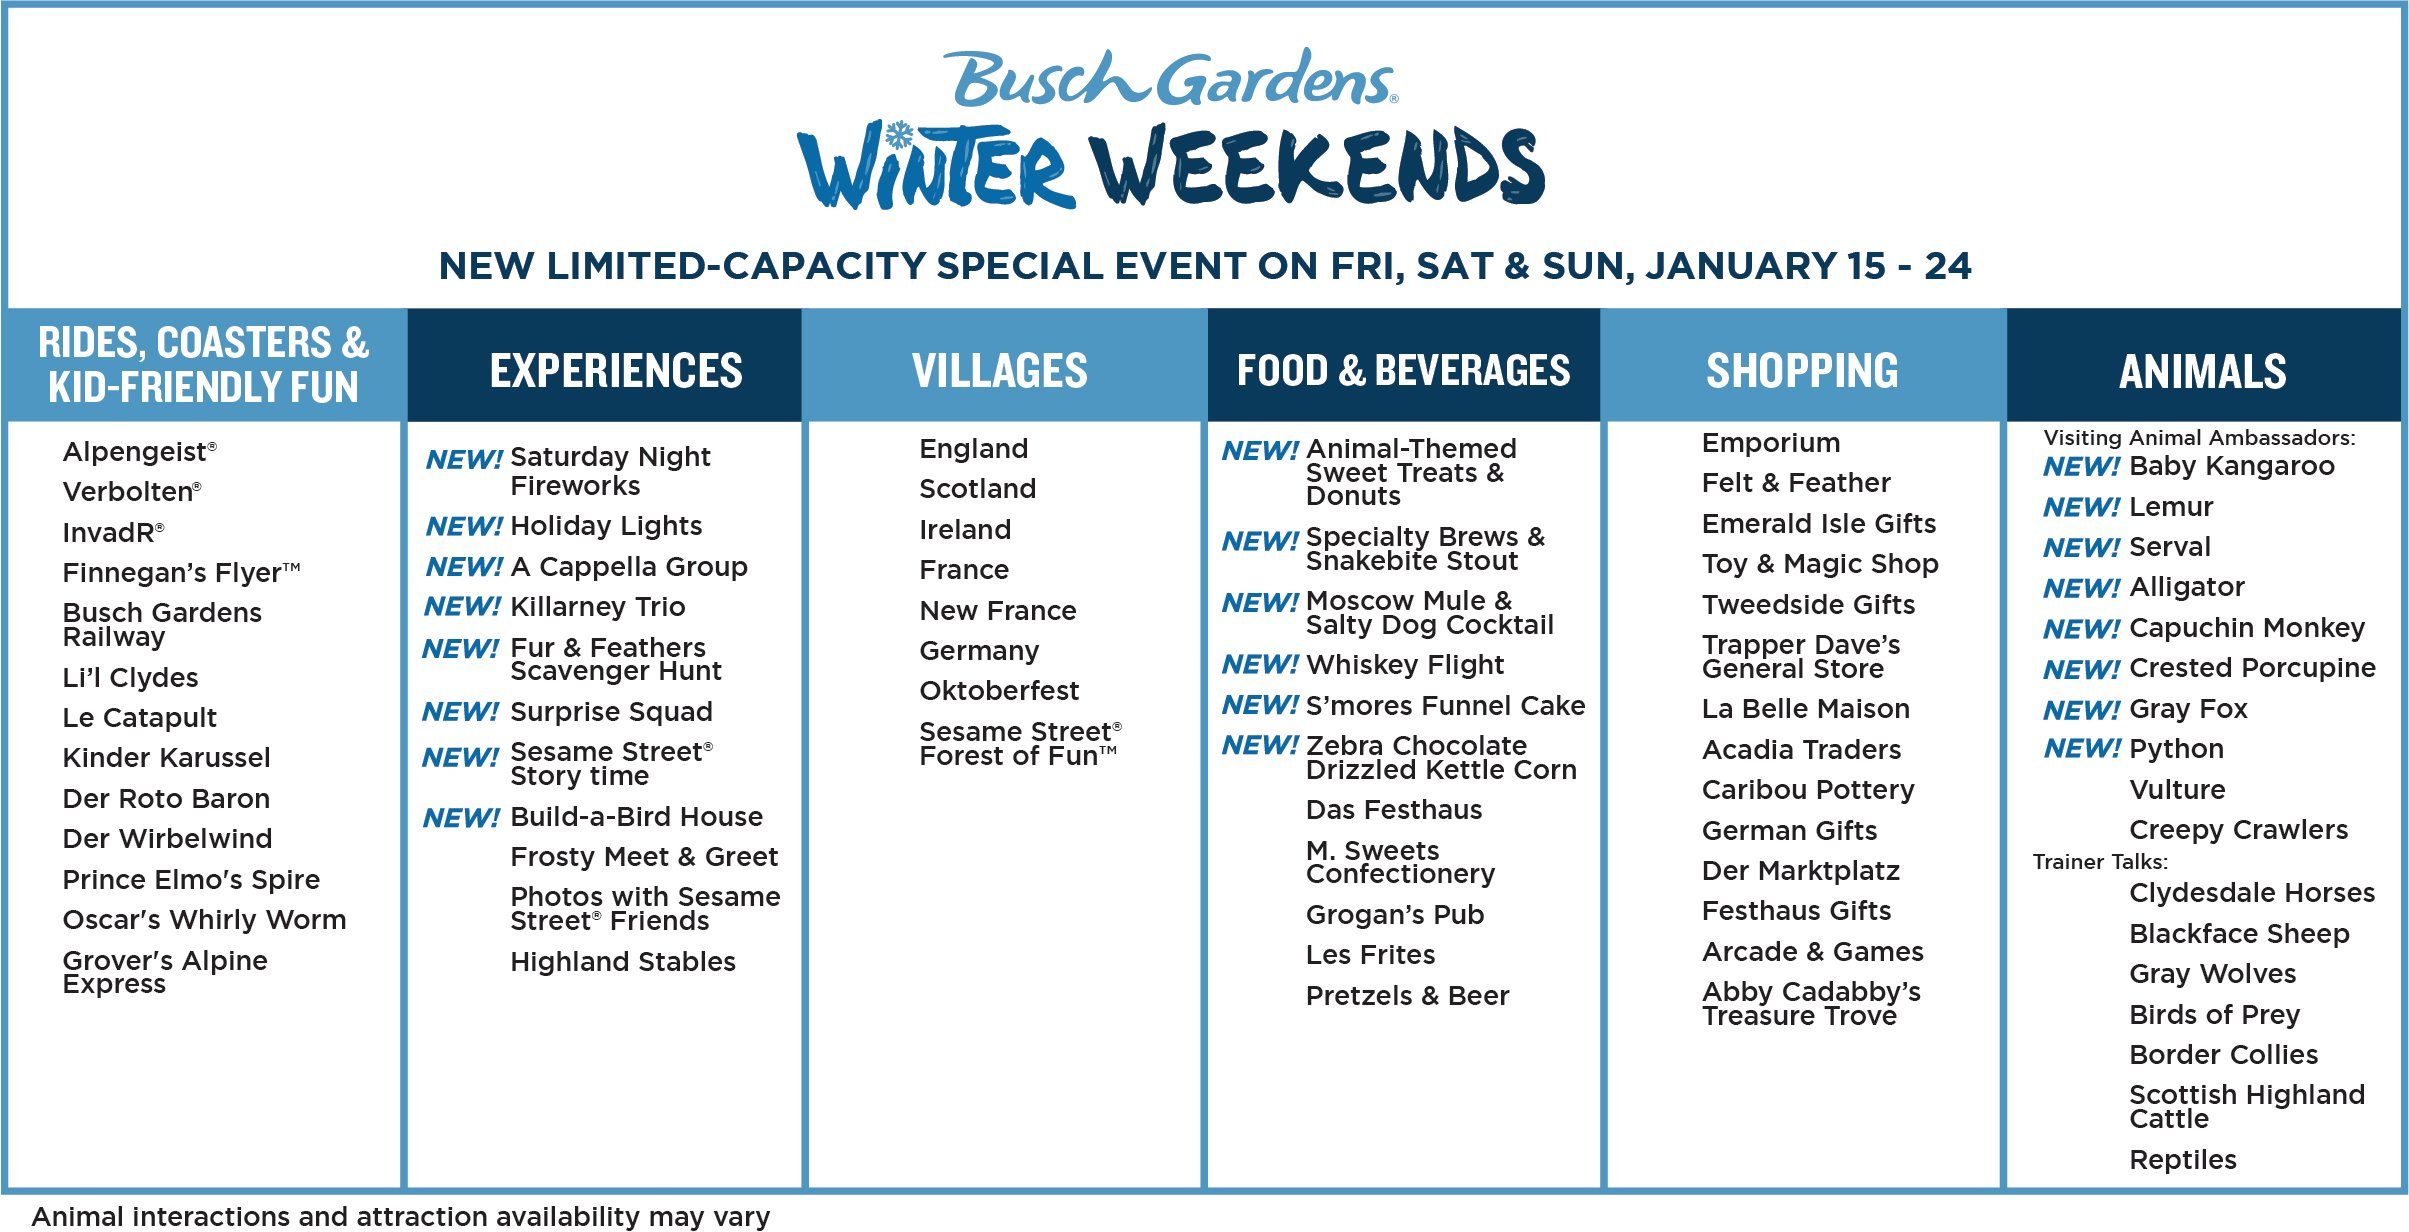 Winter Weekends Chart. Enjoy the new Busch Gardens Williamsburg 2021 special events that offer socially distanced fun and entertainment all year long. Busch Gardens will be the place for all things fun, new, and safe in 2021.